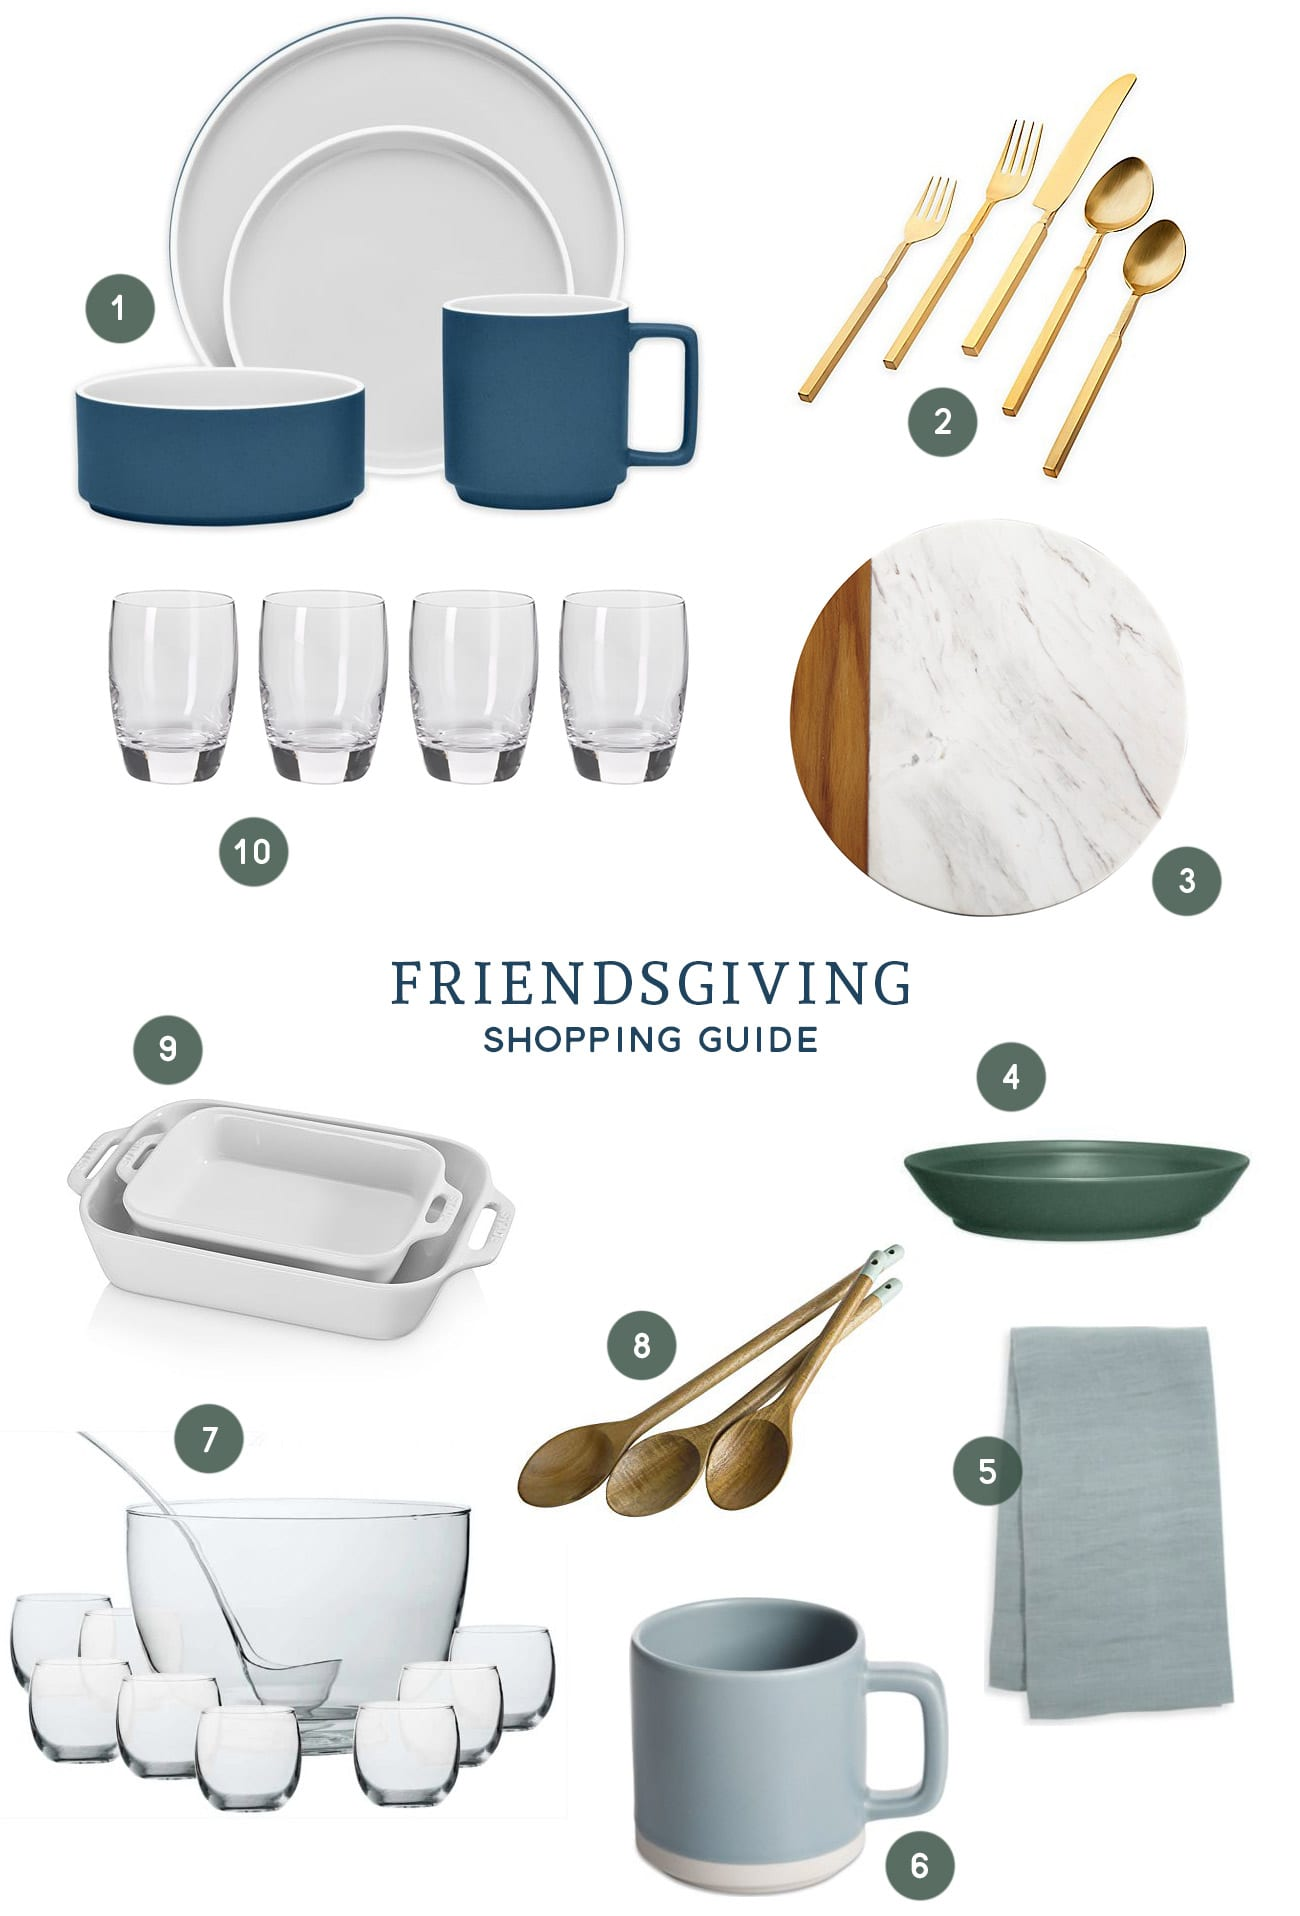 A Friendsgiving Brunch | Friendsgiving ideas, Friendsgiving recipes, entertaining tips and more from entertaining blog @cydconverse